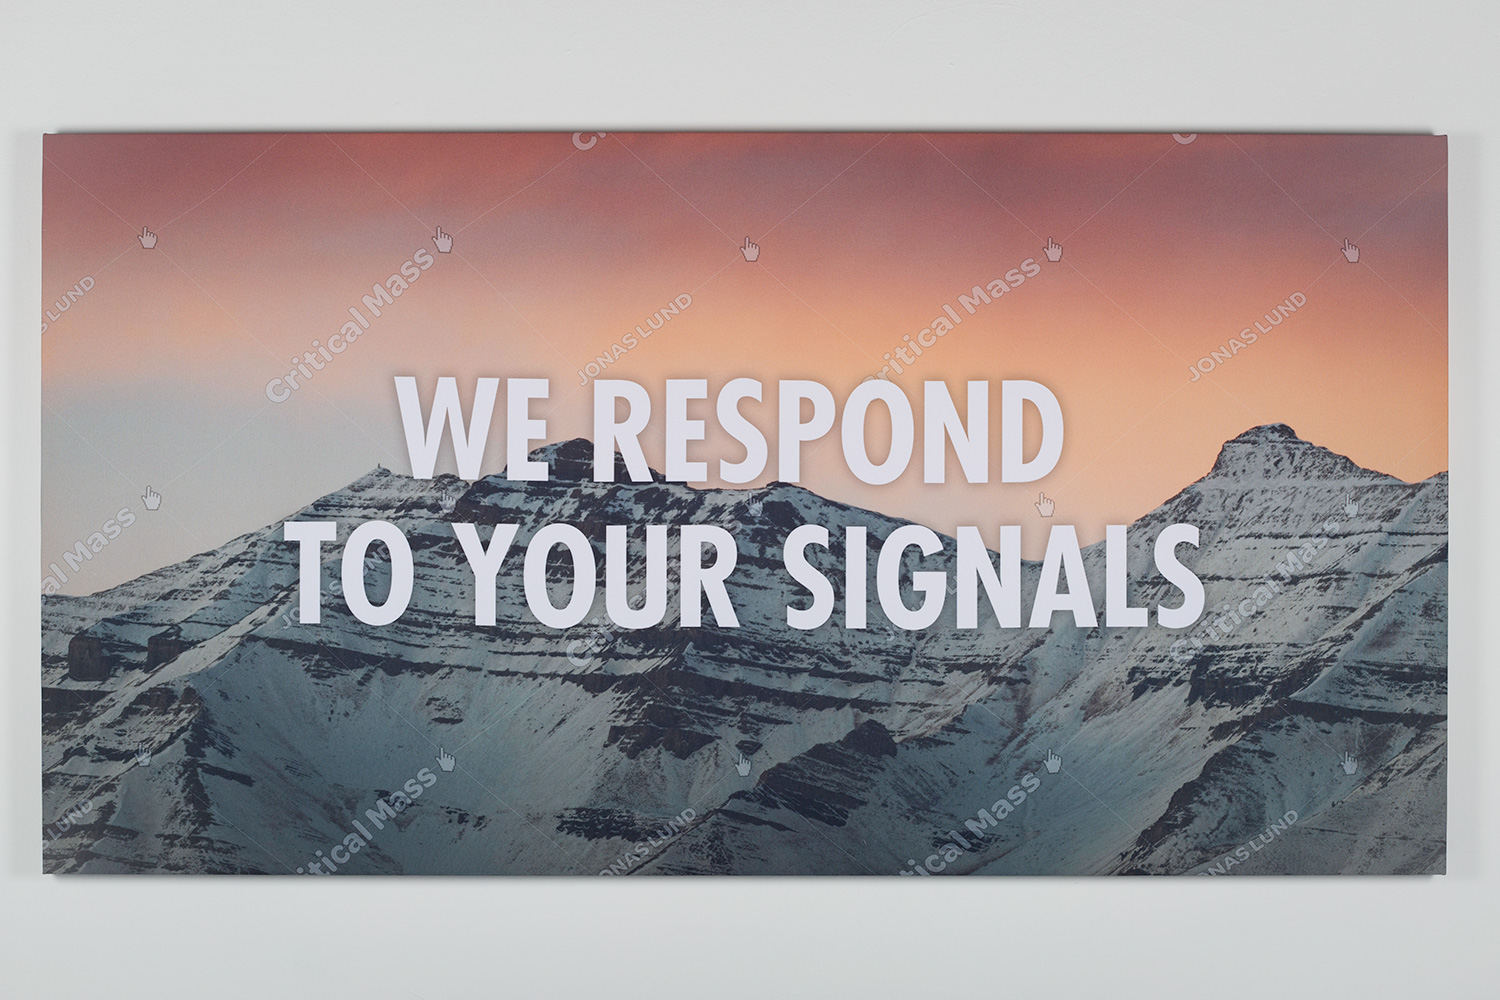 Jonas Lund Critical Mass (We Respond To Your Signals)